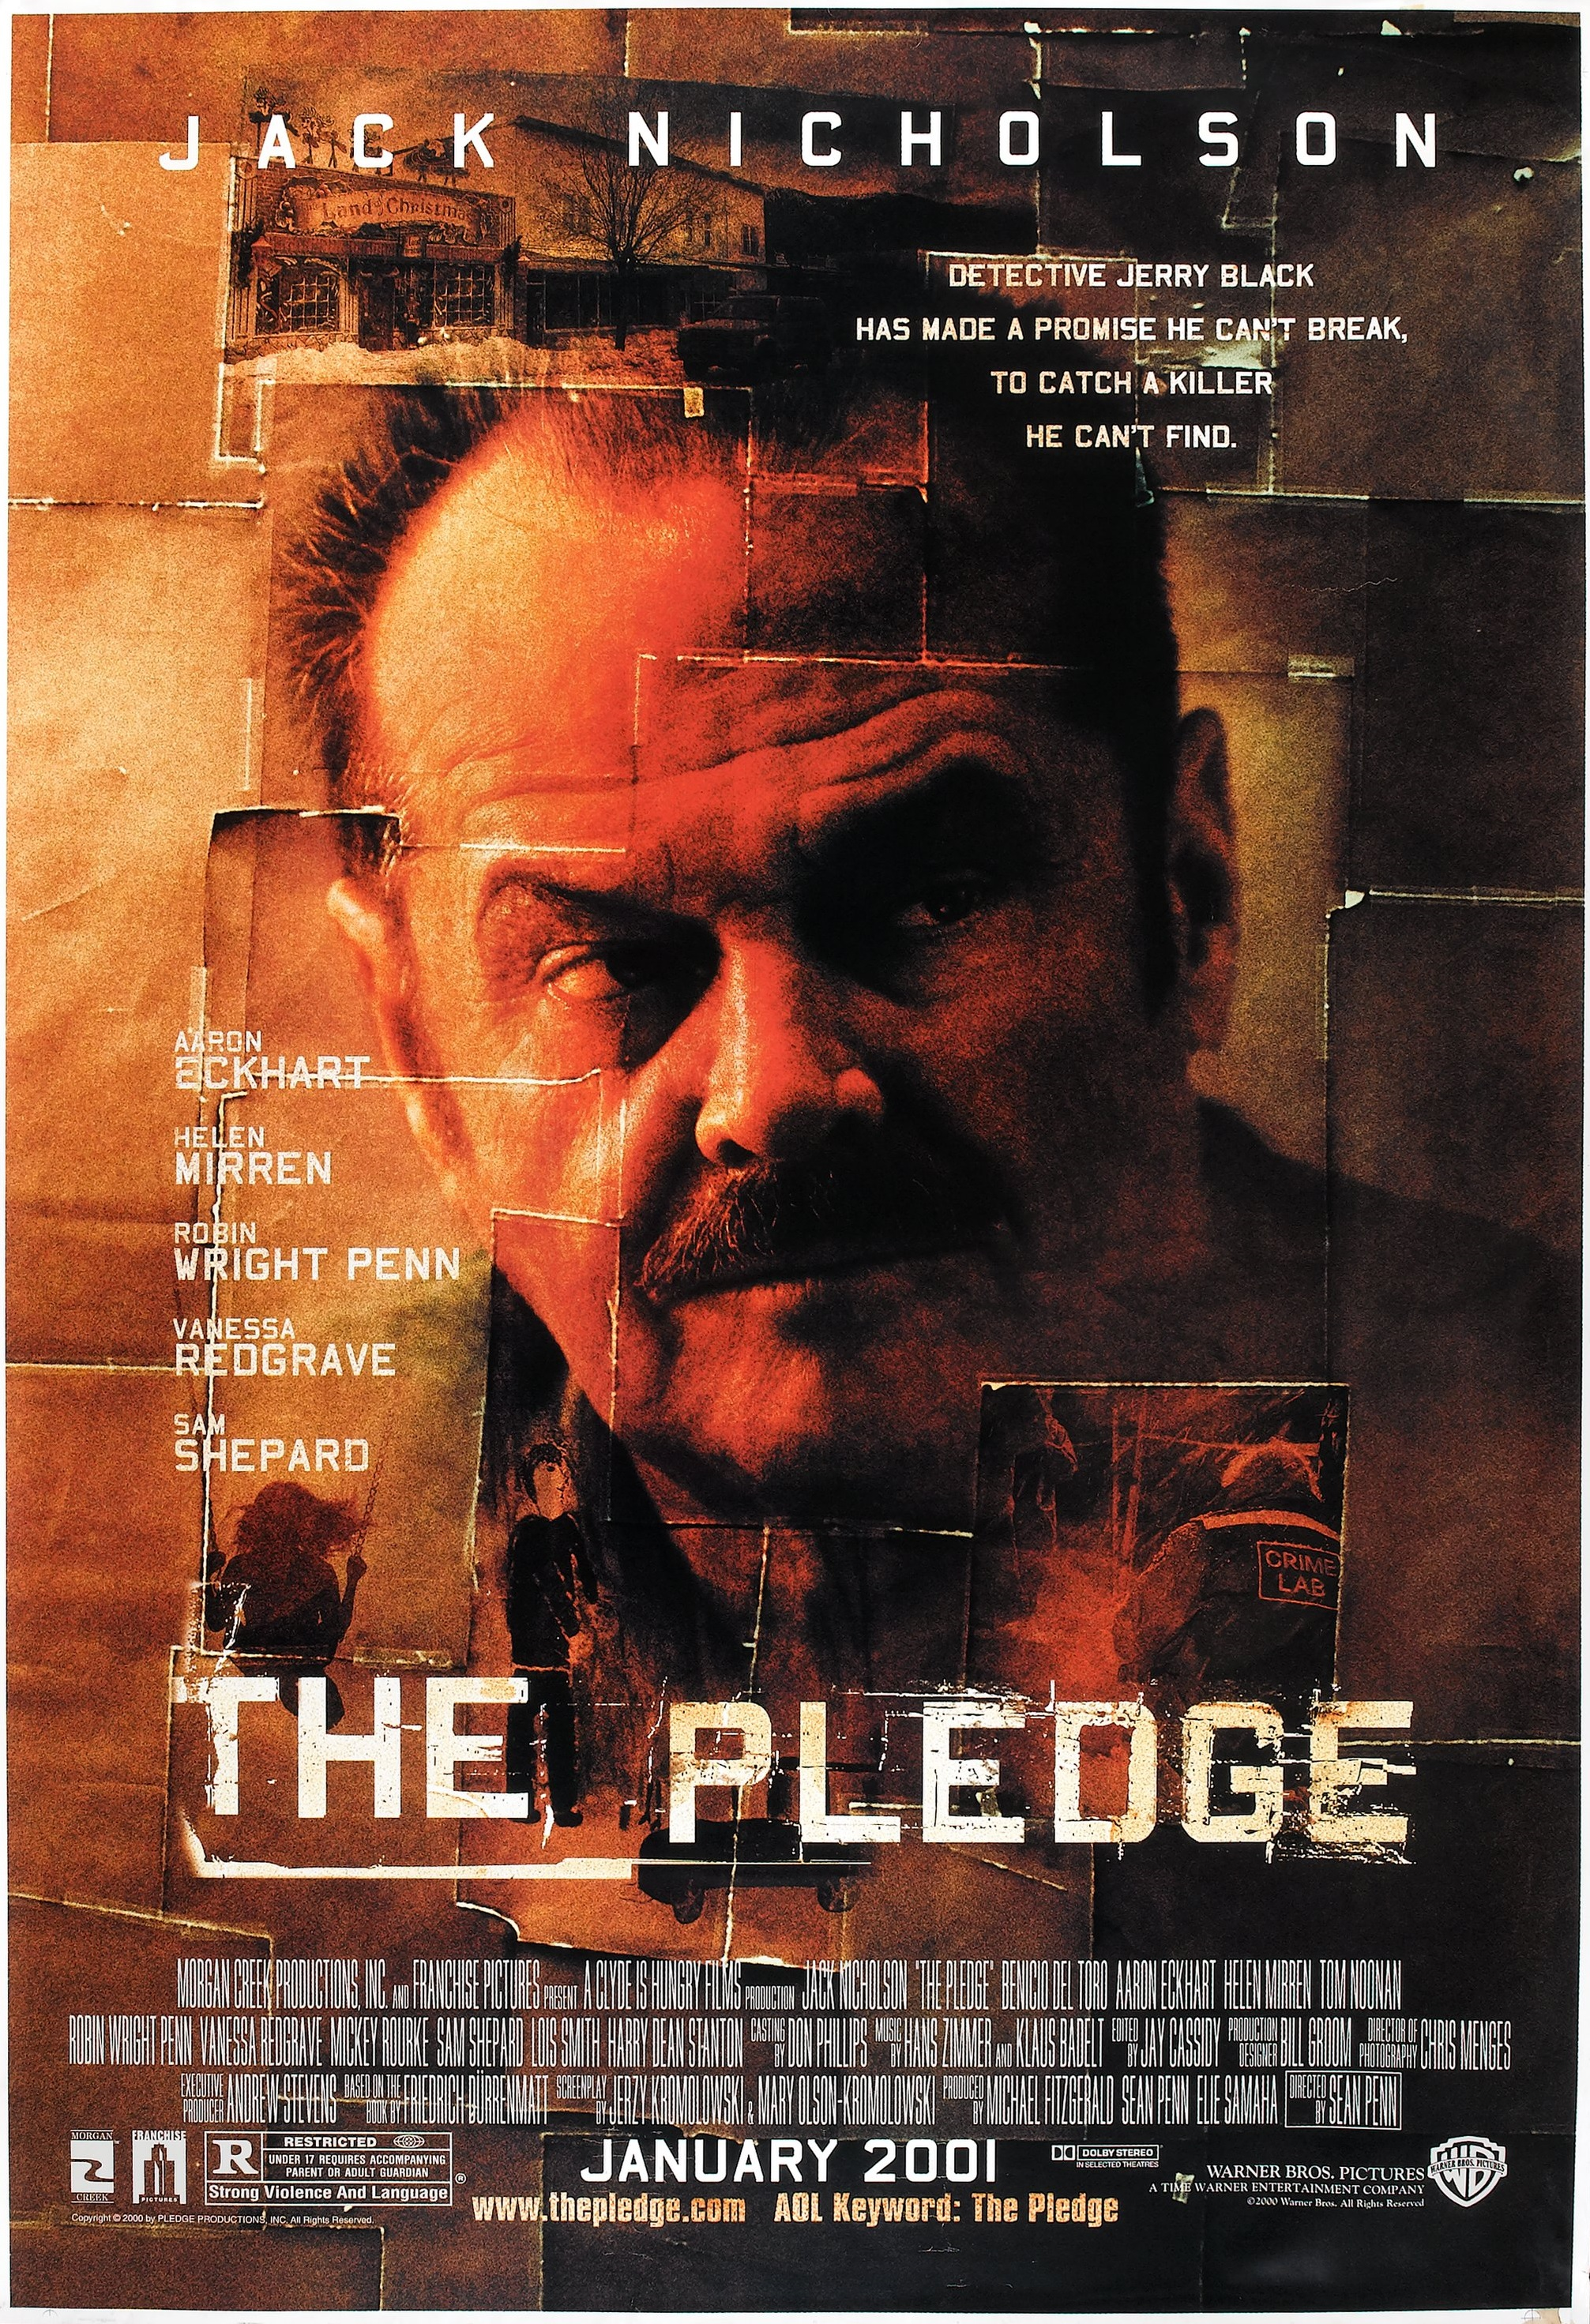 The Pledge (2001) - Directed by: Sean PennStarring: Jack Nicholson, Aaron Eckhart, Benicio Del Toro, Patricia Clarkson, Helen Mirren, Robin Wright, Mickey Rourke, Sam Shepard, Harry Dean Stanton, Lois Smith, Vanessa RedgraveRated: R for Strong Violence and LanguageRunning Time: 2 h 4 mTMM Score: 4 stars out of 5STRENGTHS: Unexpected Twist on a Familiar Storyline, DirectingWEAKNESSES: Some Overly Coincidental Moments, Some Dicey Acting